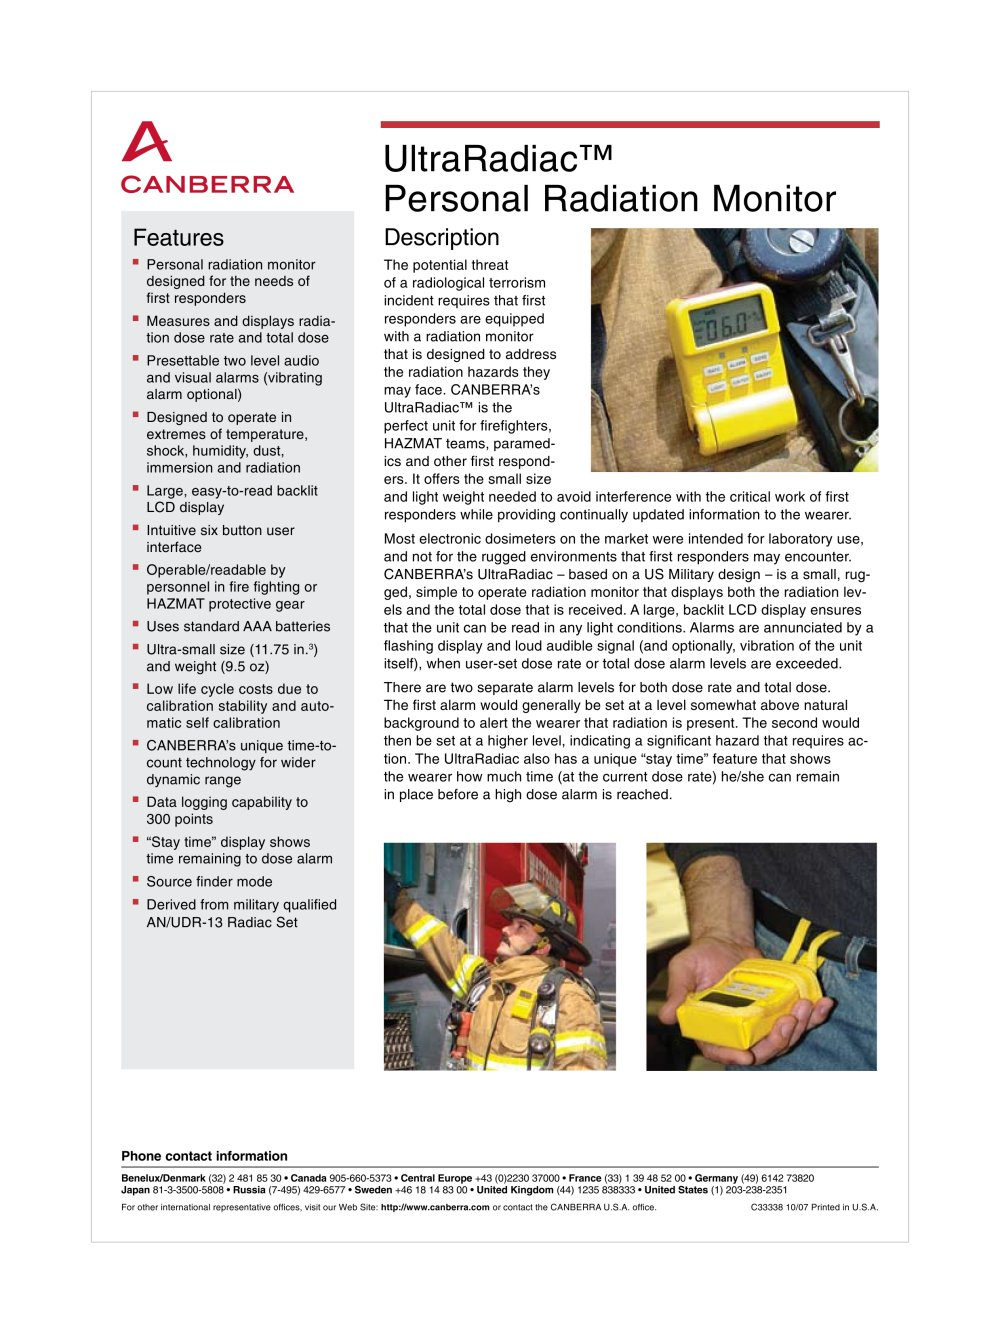 digital dosimeter UltraRadiac™ Personal Radiation Monitor - 1 / 4 Pages